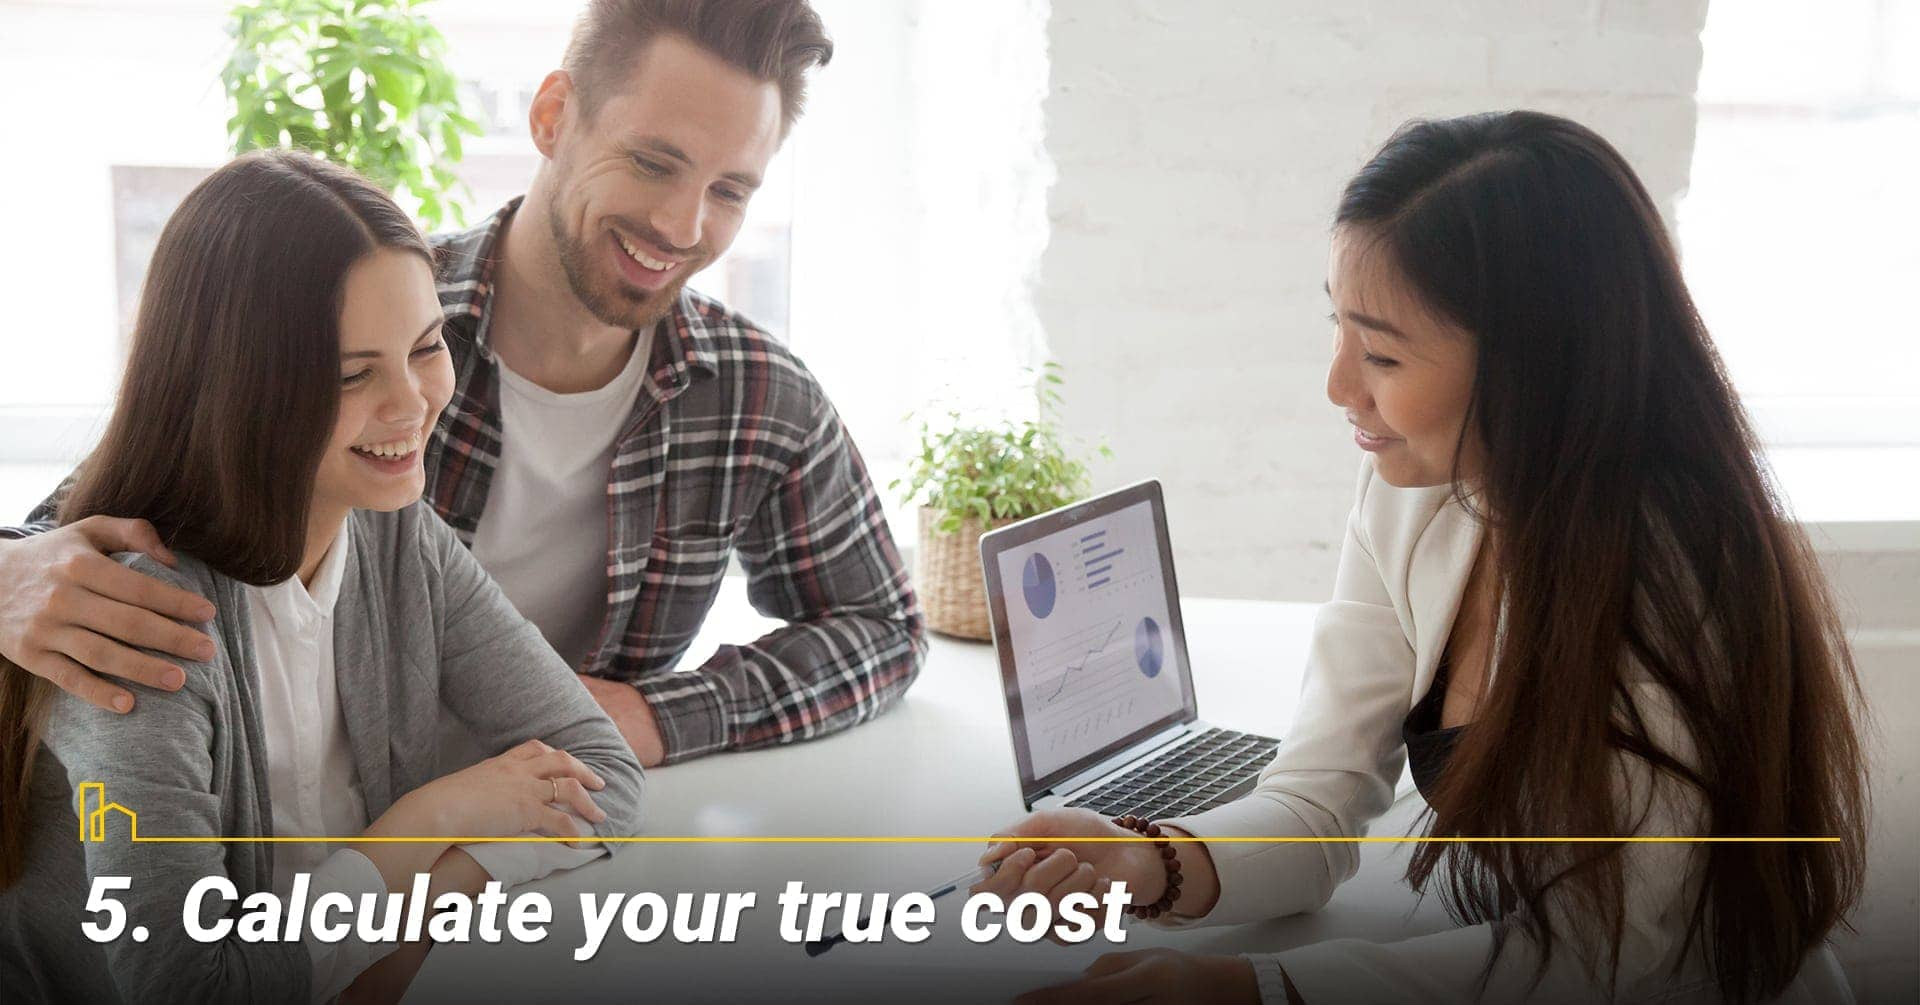 Calculate your true cost, true cost of buying a home